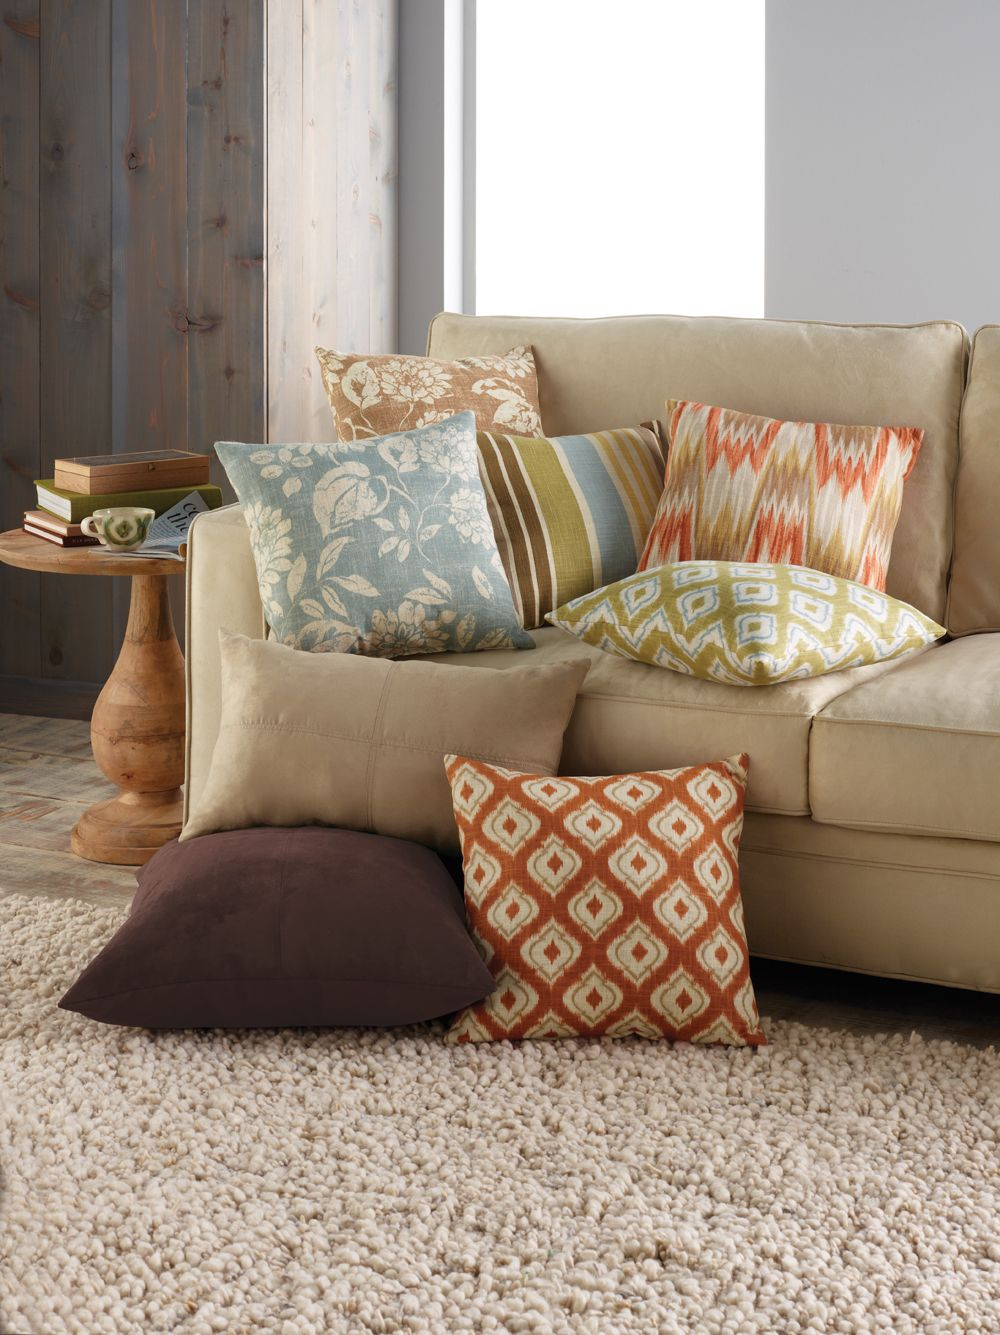 Throw Pillows Galore. #homedecor #Kohls · Decorative Pillows For CouchColorful  ... Part 25